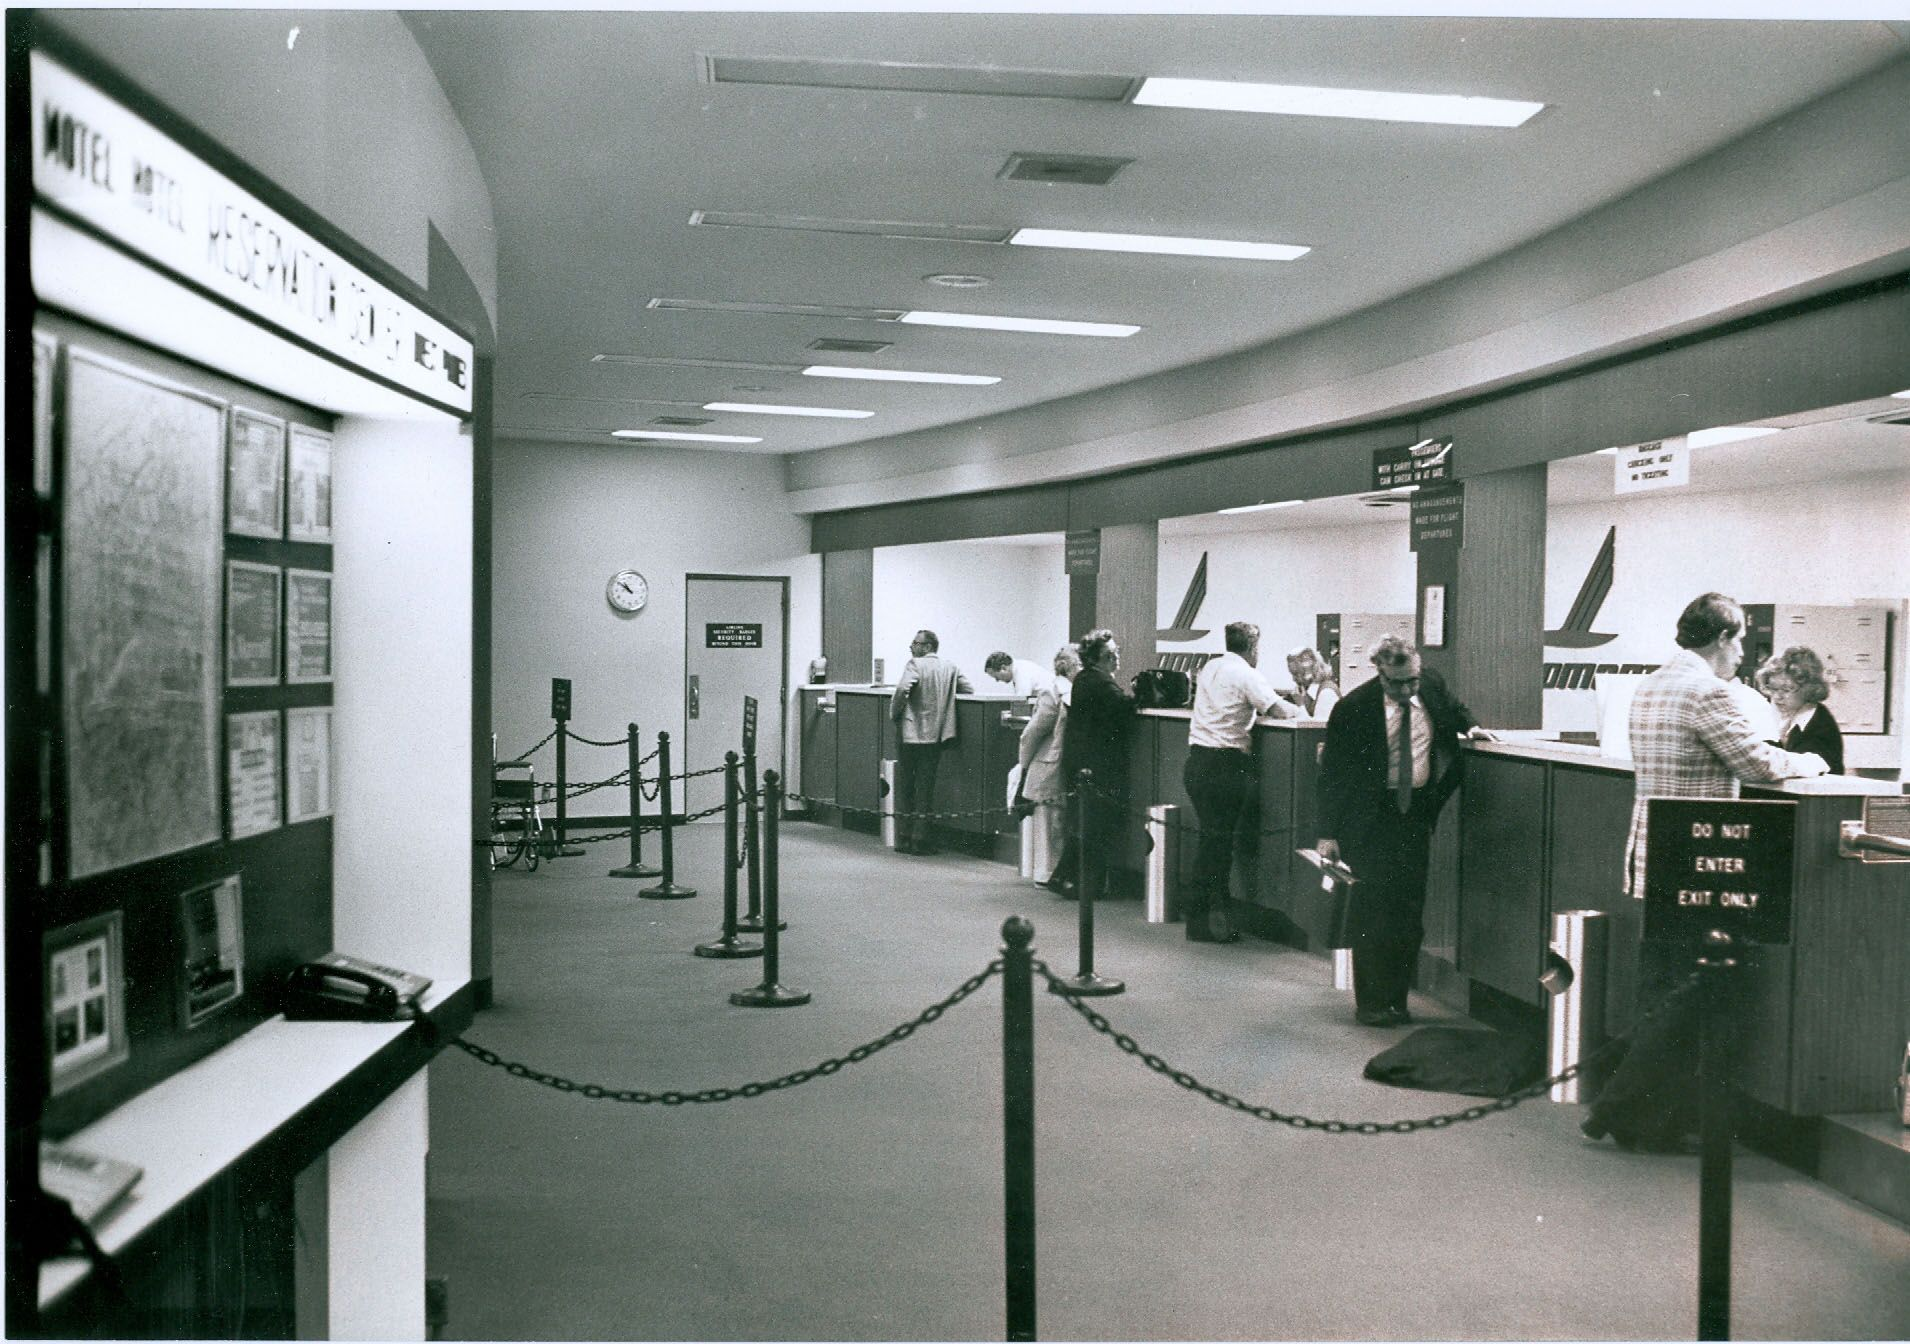 #TBT #ThrowbackThursday Who remembers when the airport terminal looked like this?